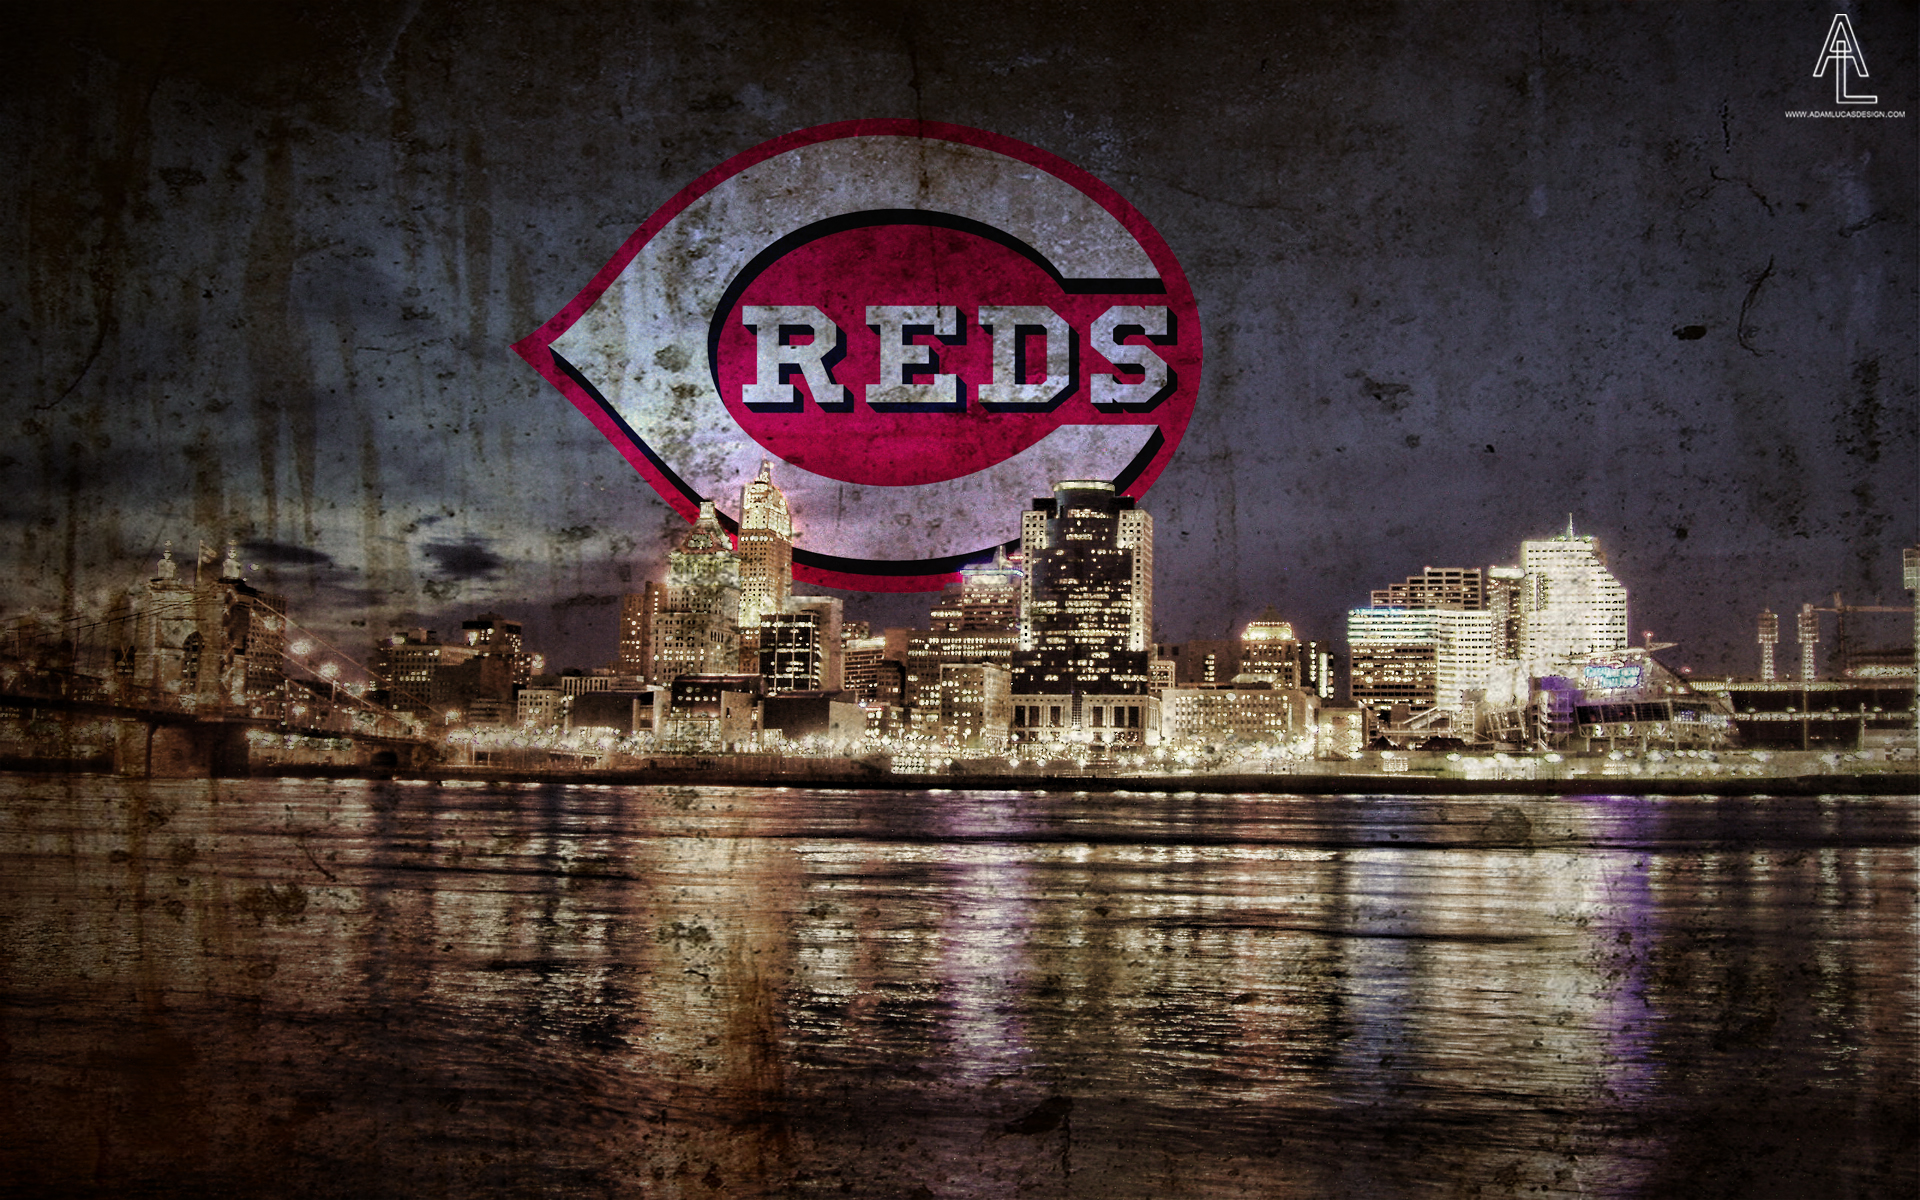 Feature 17 Players And A Generic Reds Wallpaper Some Of Them Are Better Than Others Tough To Find Good Pictures But Hopefully You Enjoy All